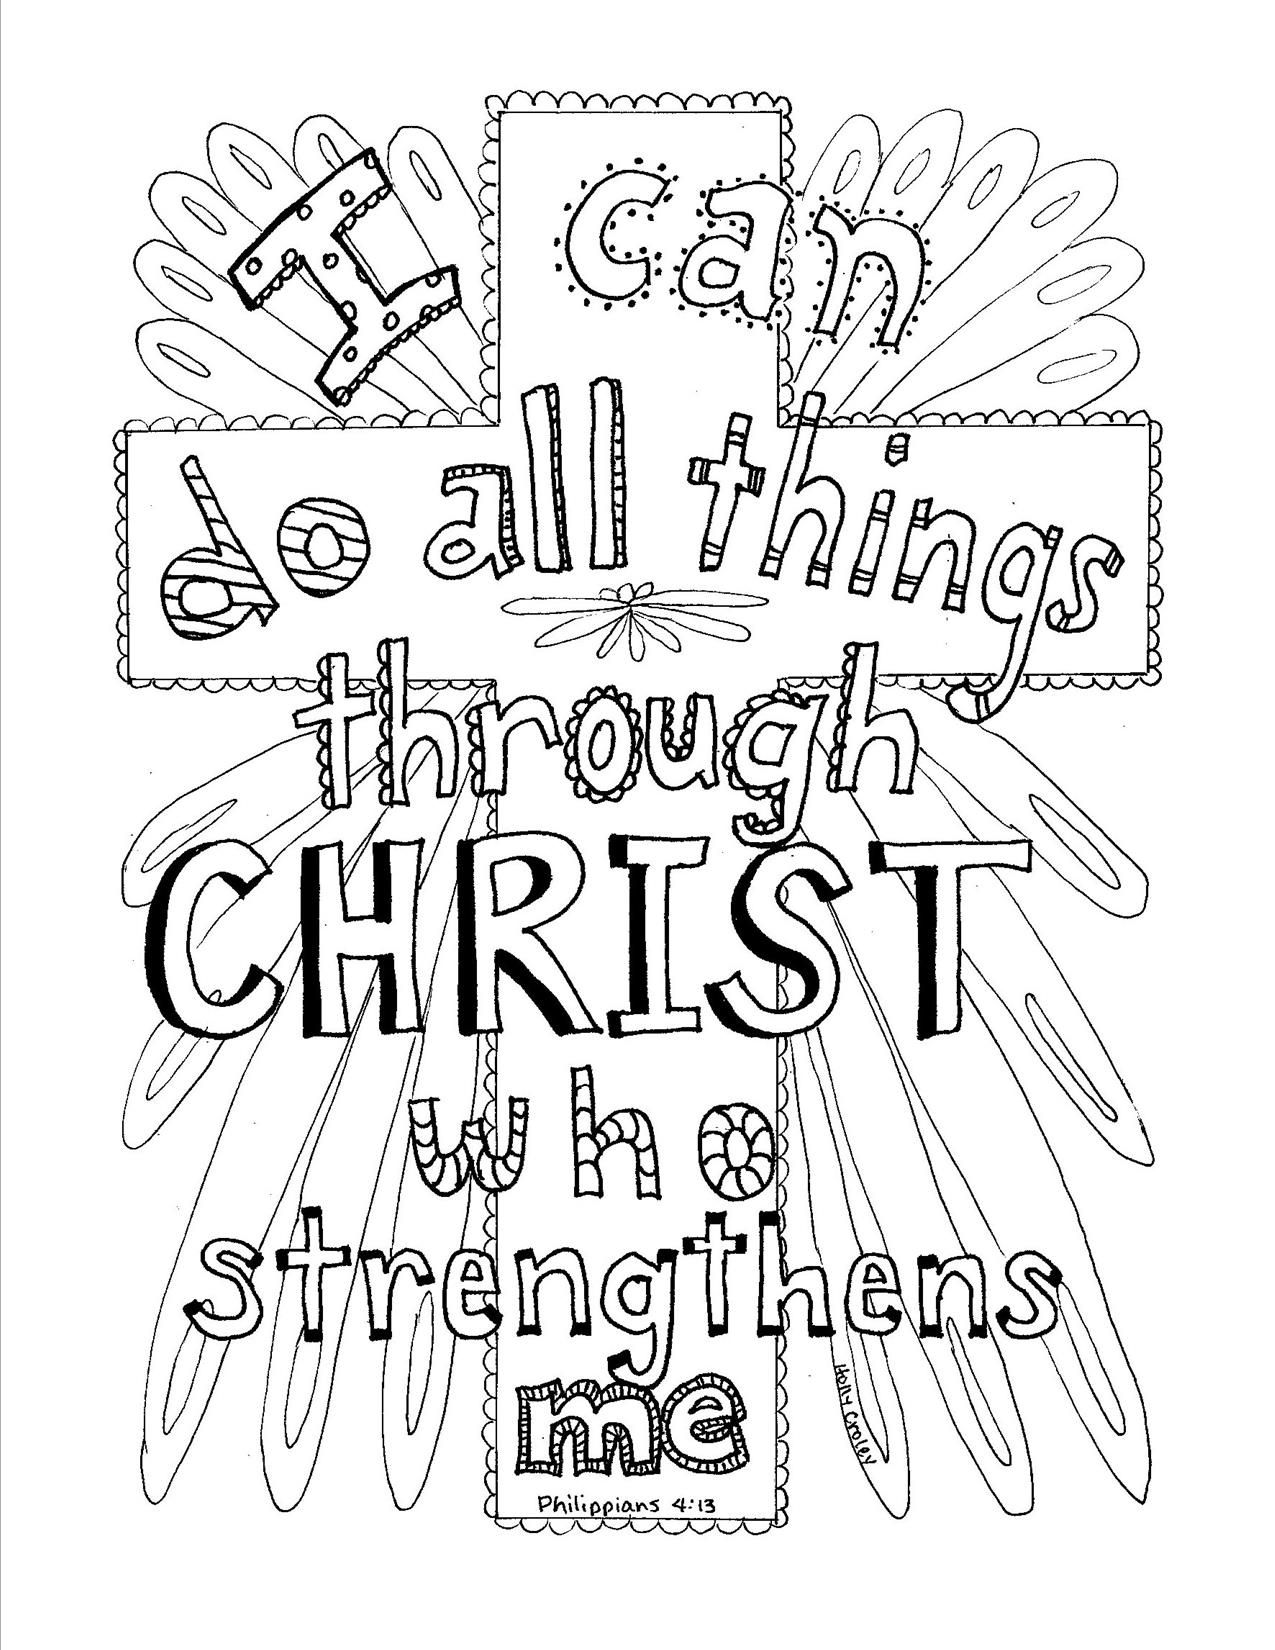 Philippians 4:13 Scripture coloring page | Coloring Book Pages ...